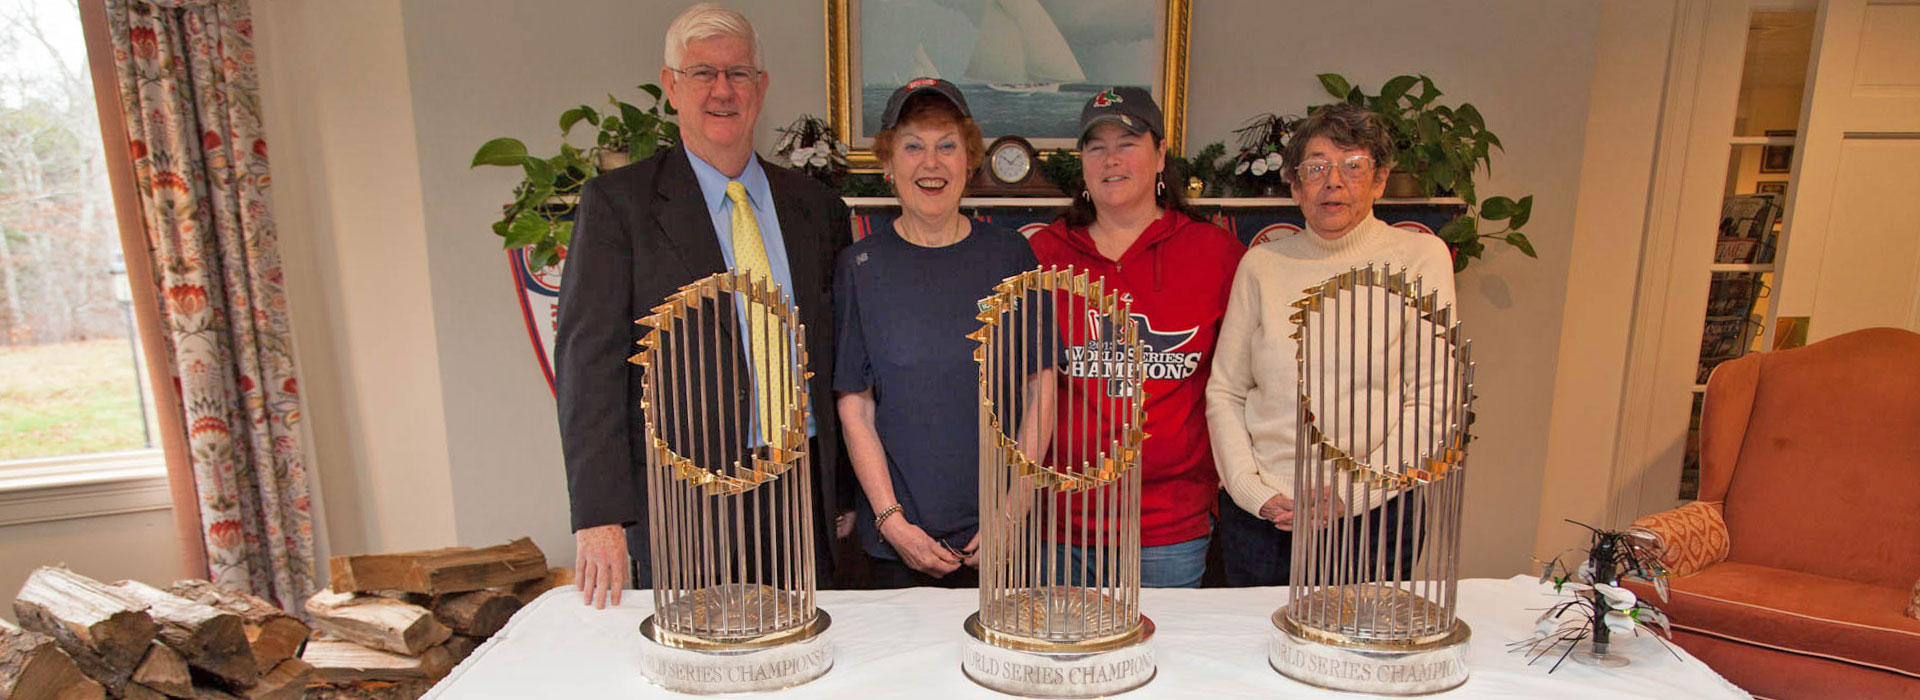 Thirwood Place activities - Red Sox trophy